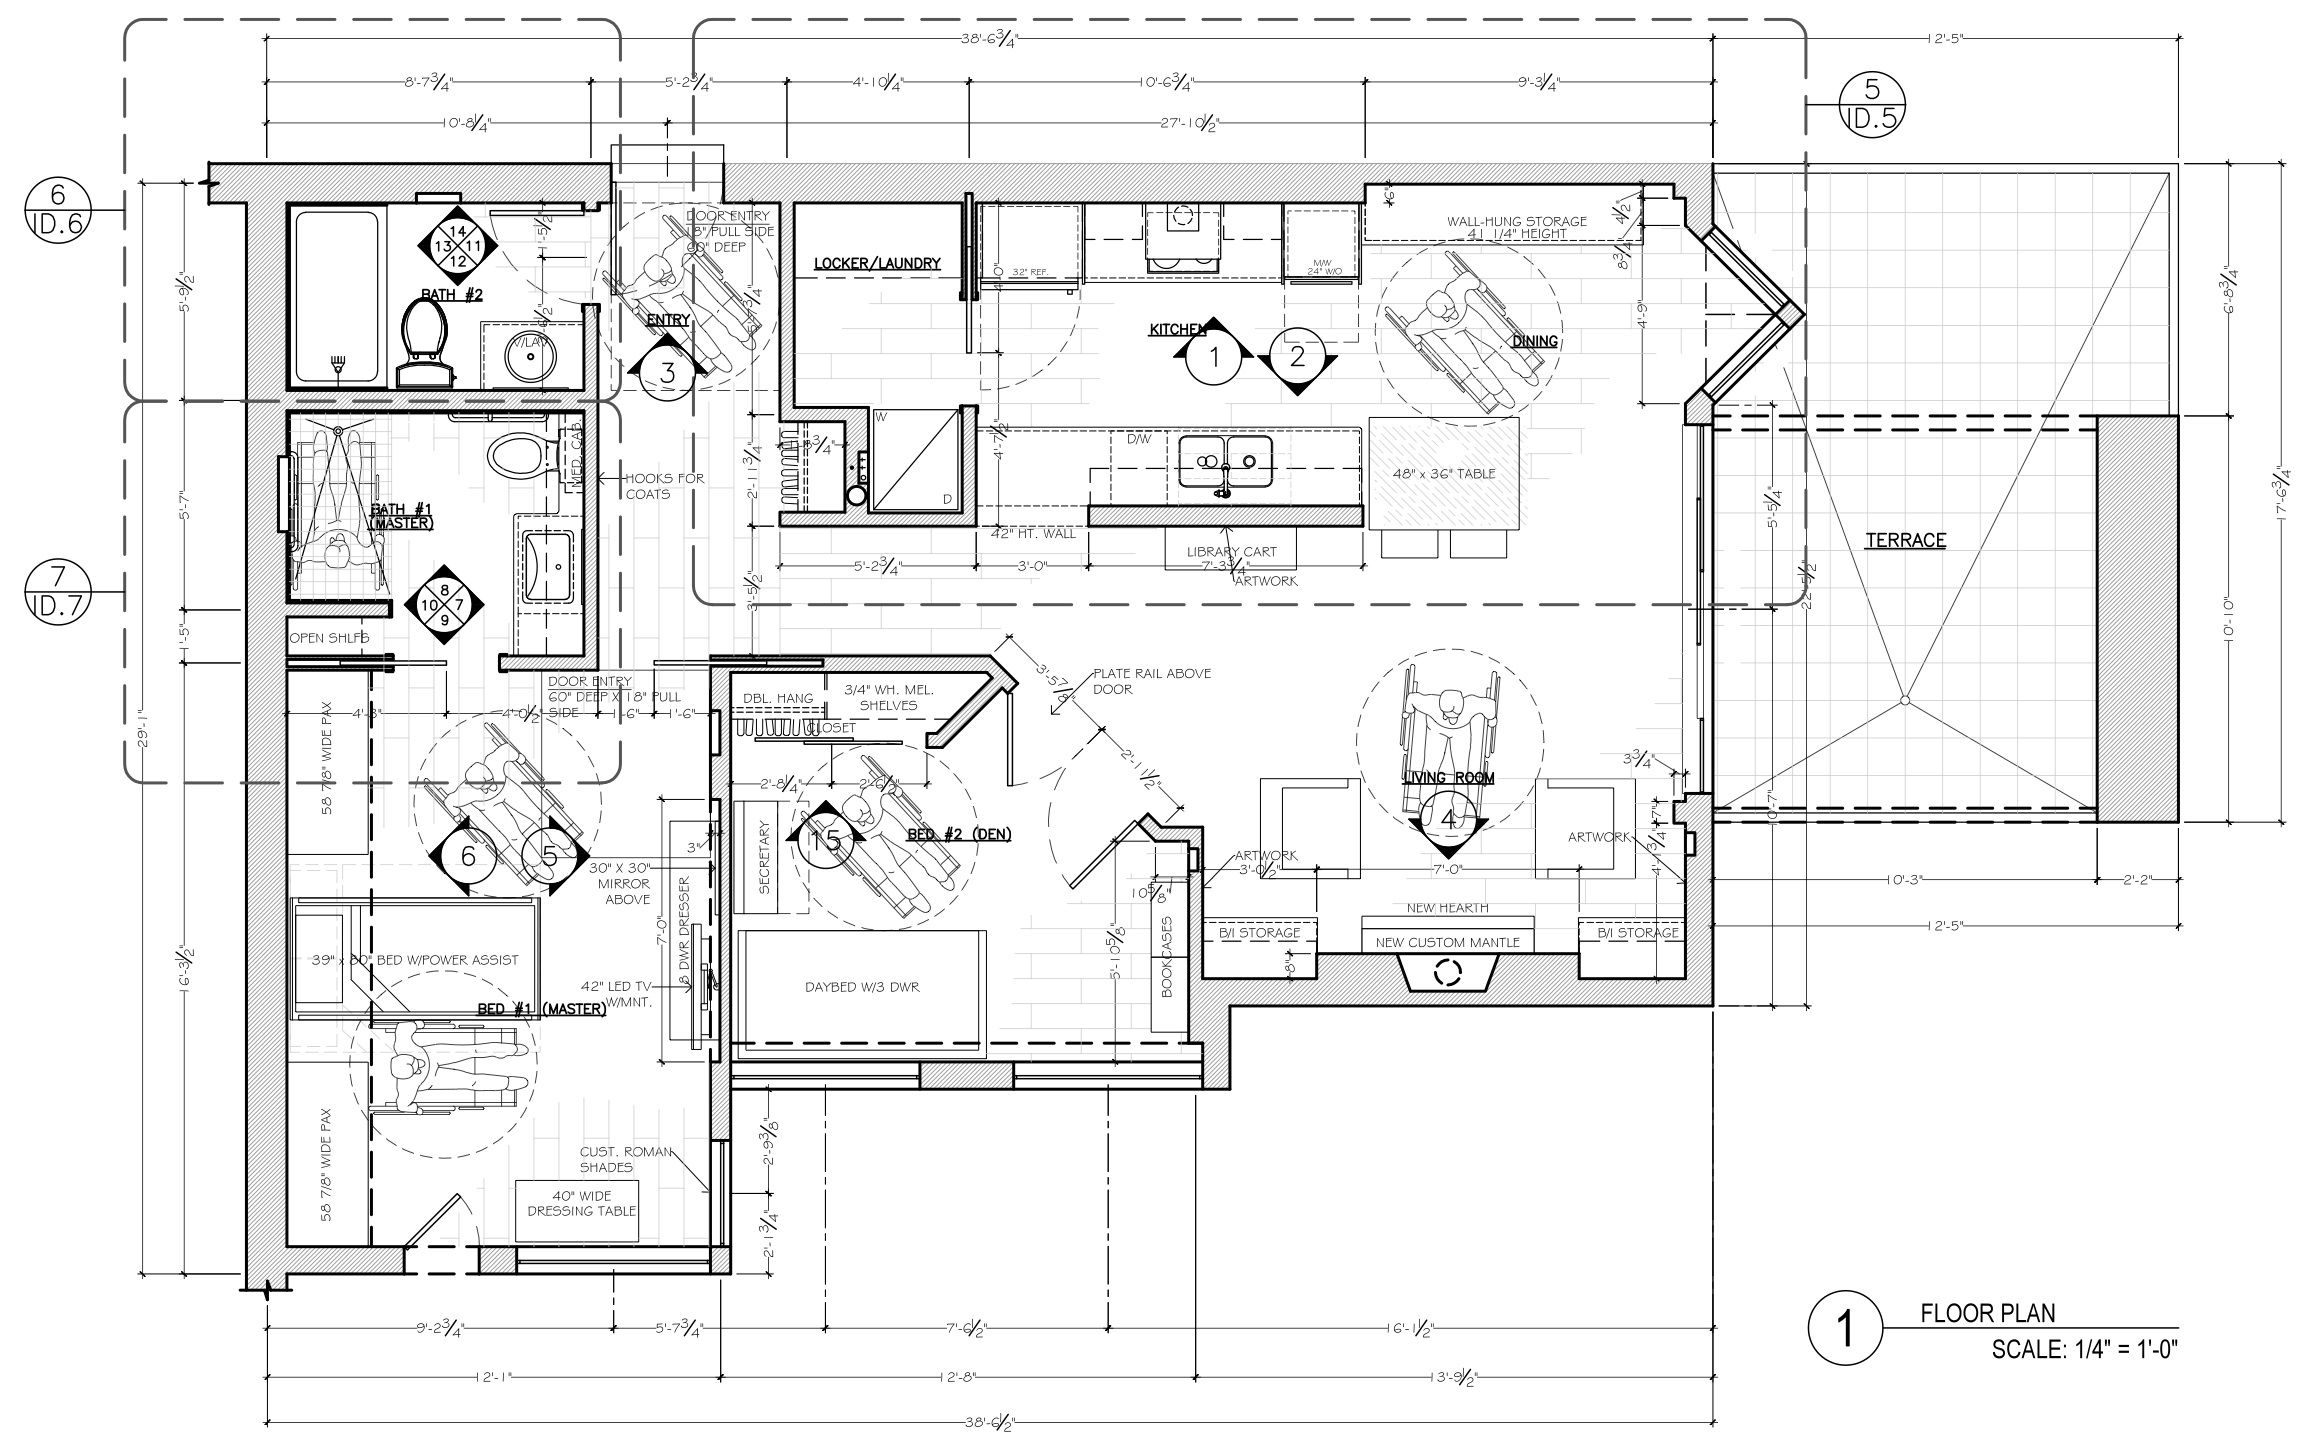 Floor Plan Construction Document Corey Klassen Interior Design Proposed Floor Plan Example An Floor Plans Construction Documents Commercial Interior Design